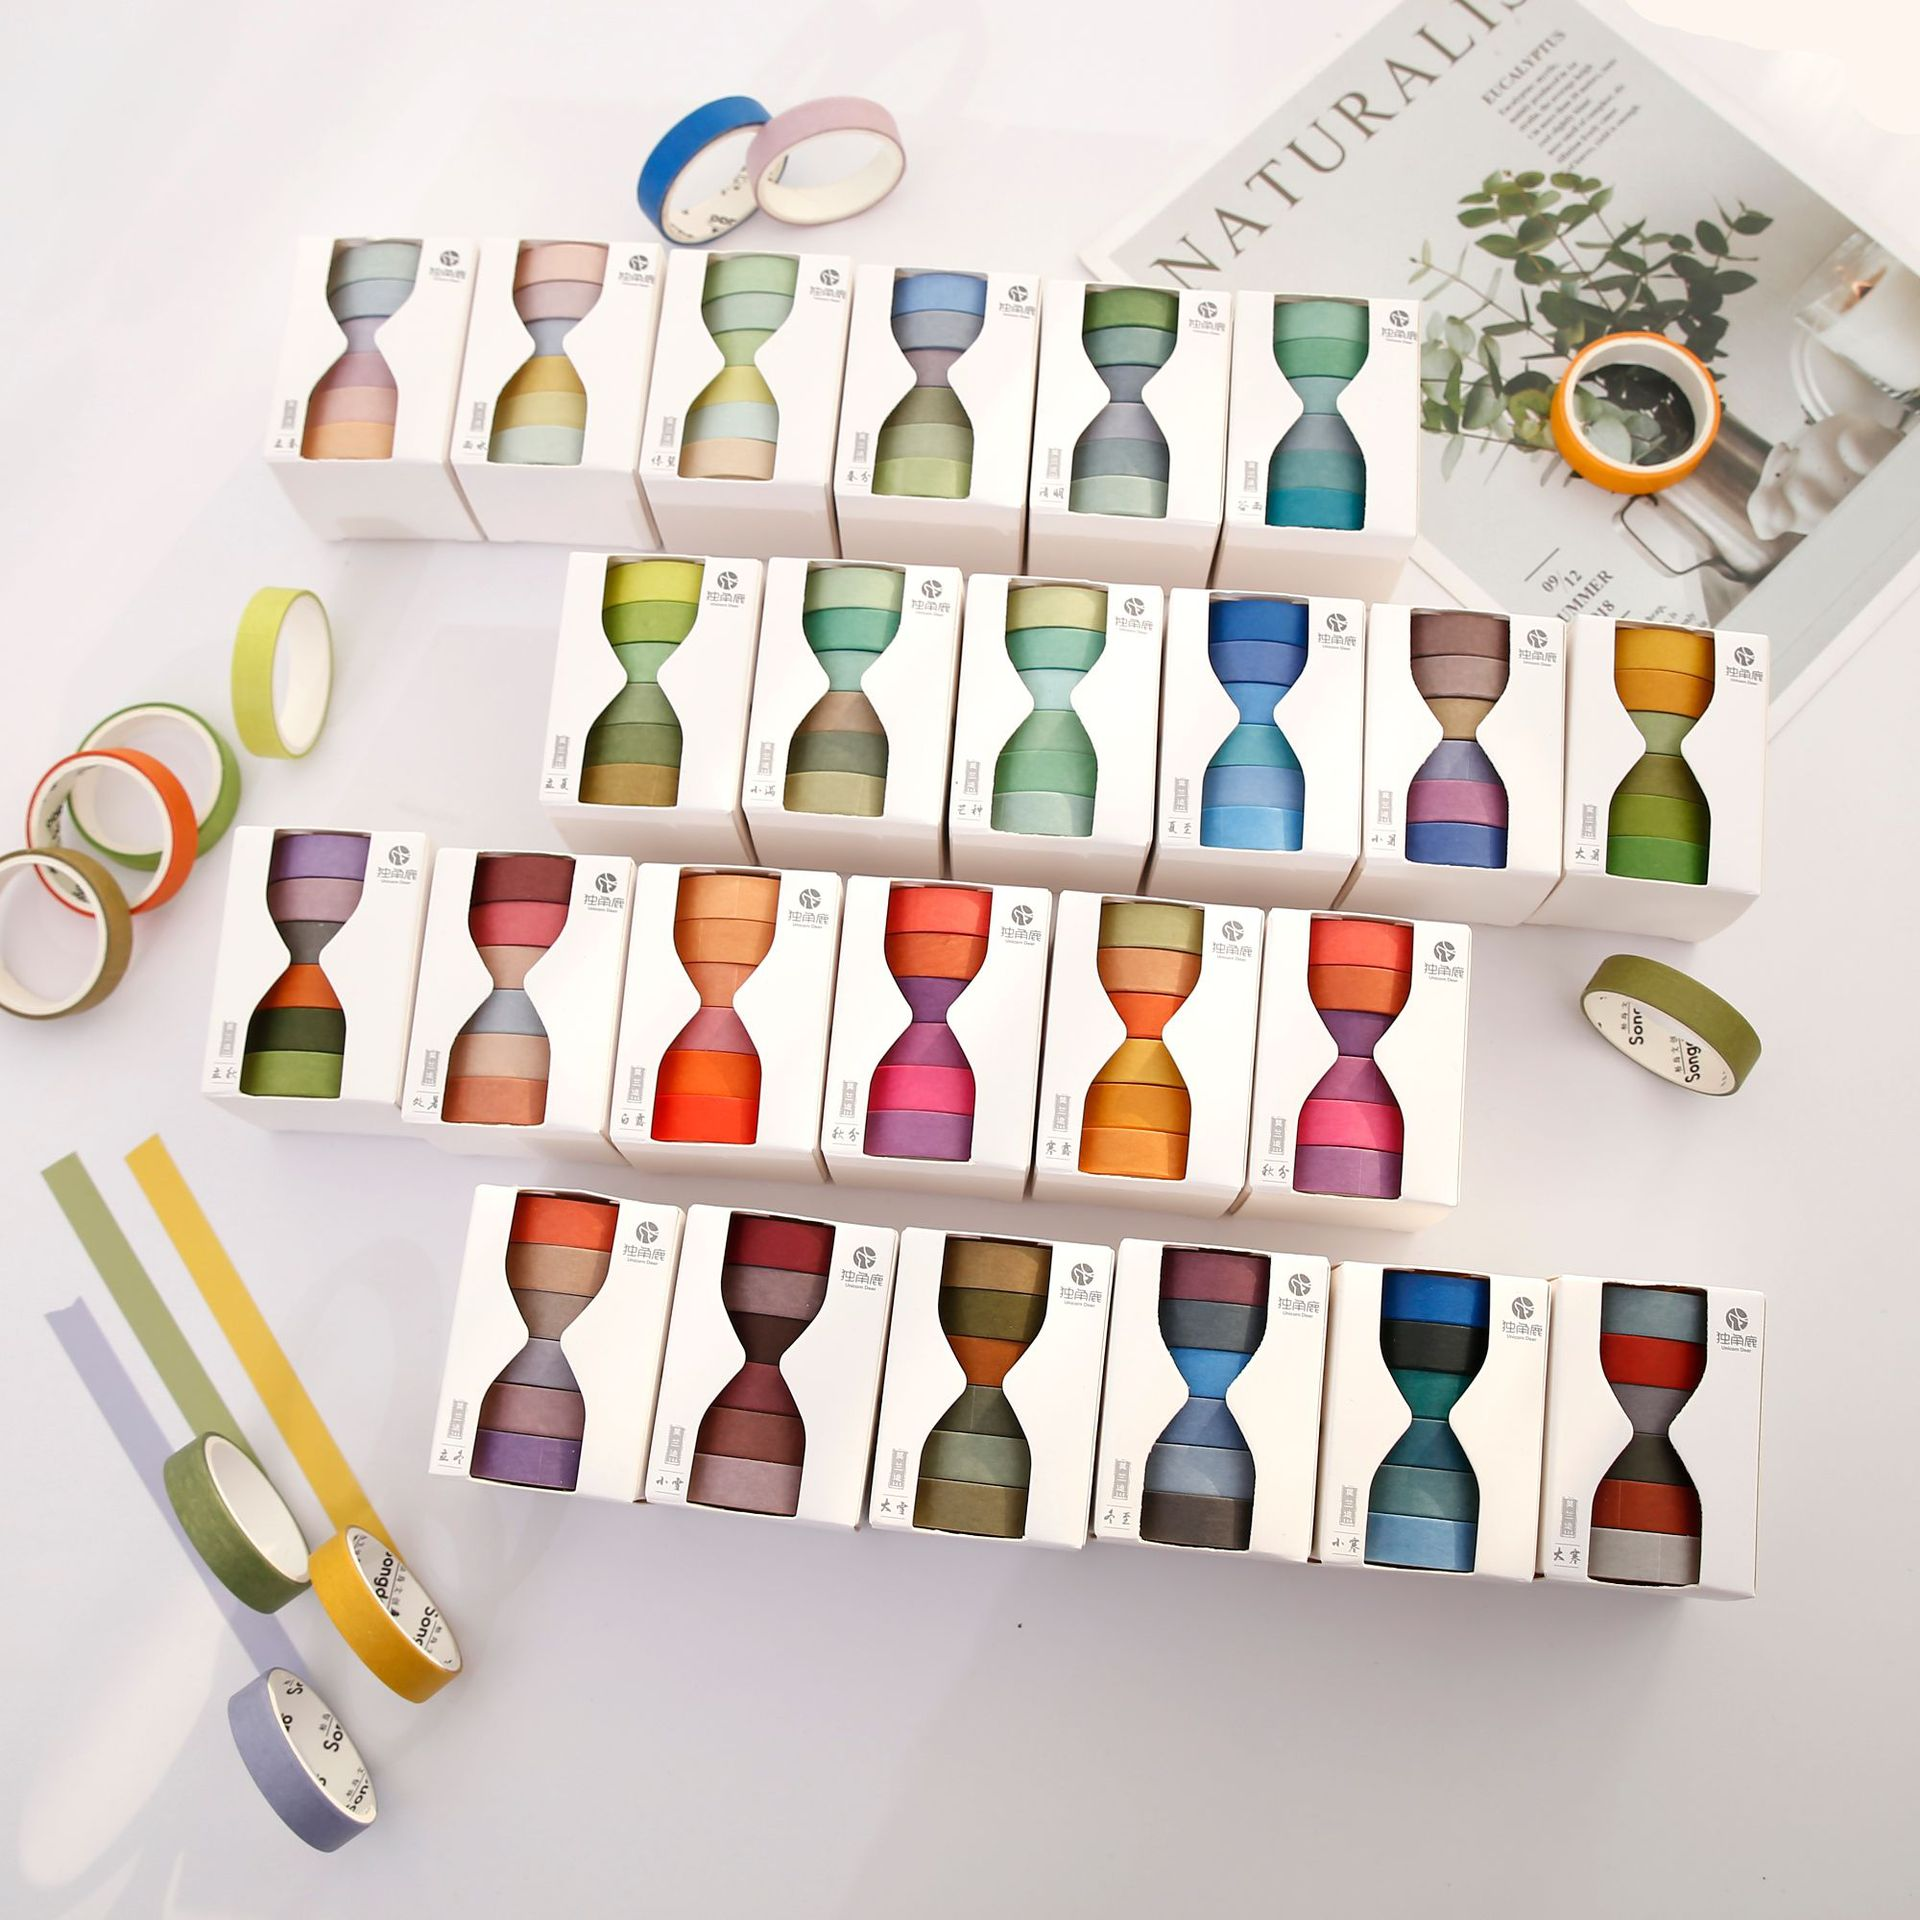 24solar Terms Series Decorative Adhesive Washi Tape Set Pure Color Masking Tape Stickers Craft Tools For Scrapbooking Stationery